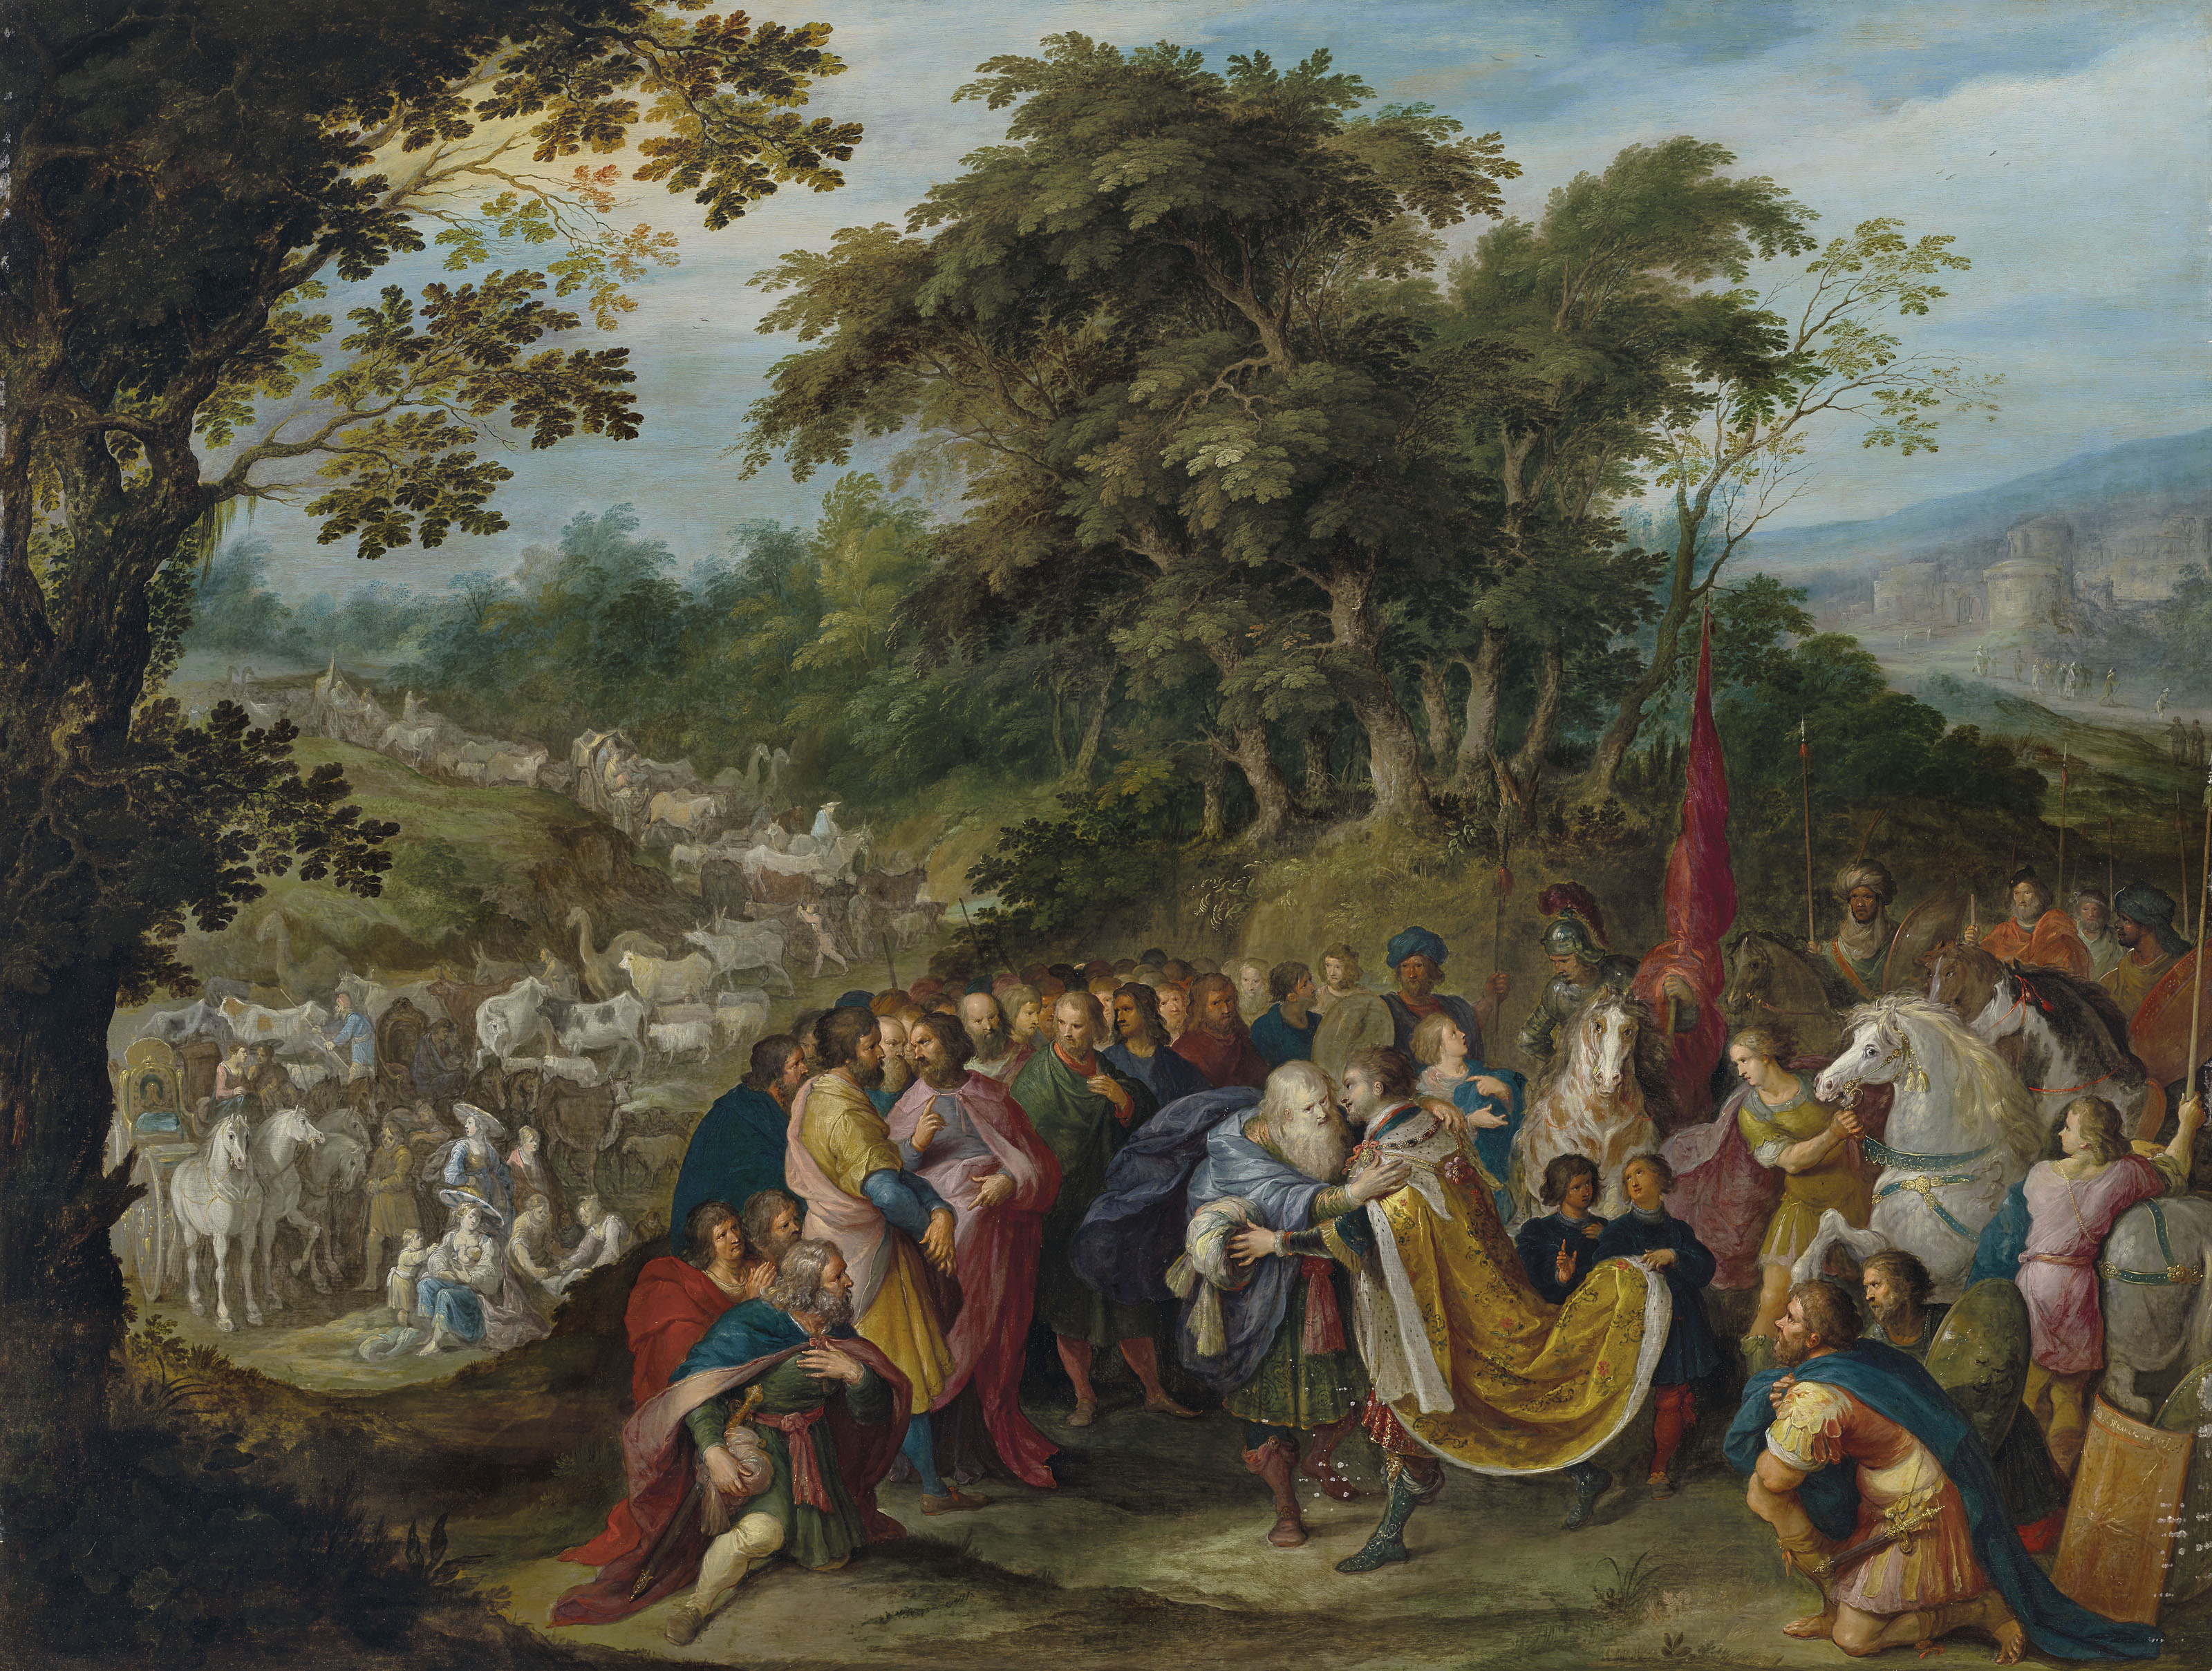 The meeting of Jacob and Joseph